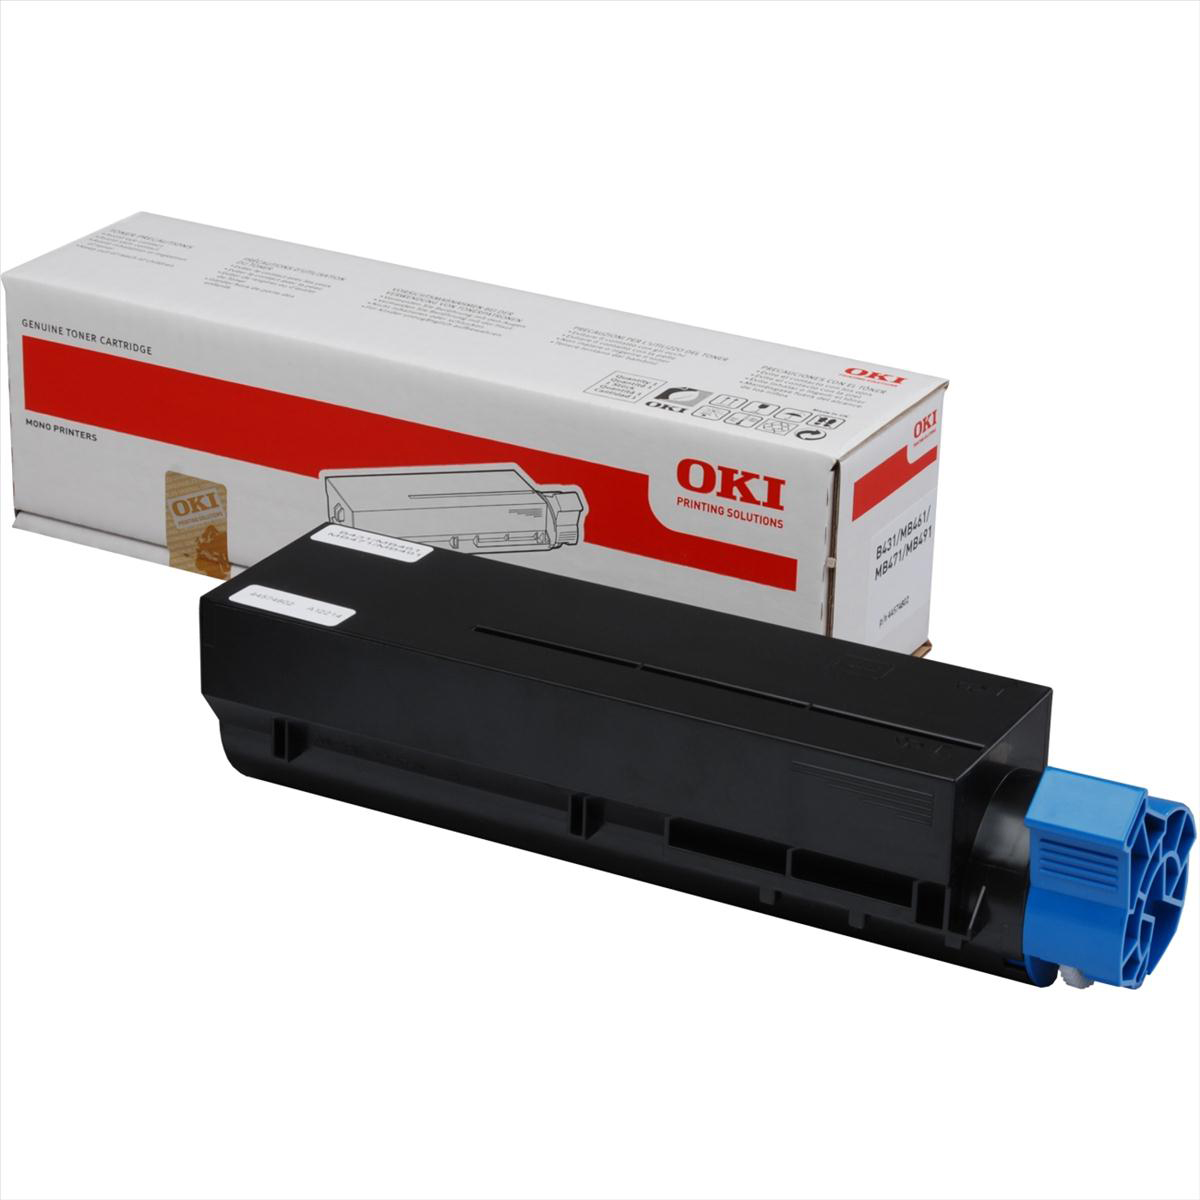 OKI Laser Toner Cartridge Extra High Yield Page Life 12000pp Black Ref 44917602